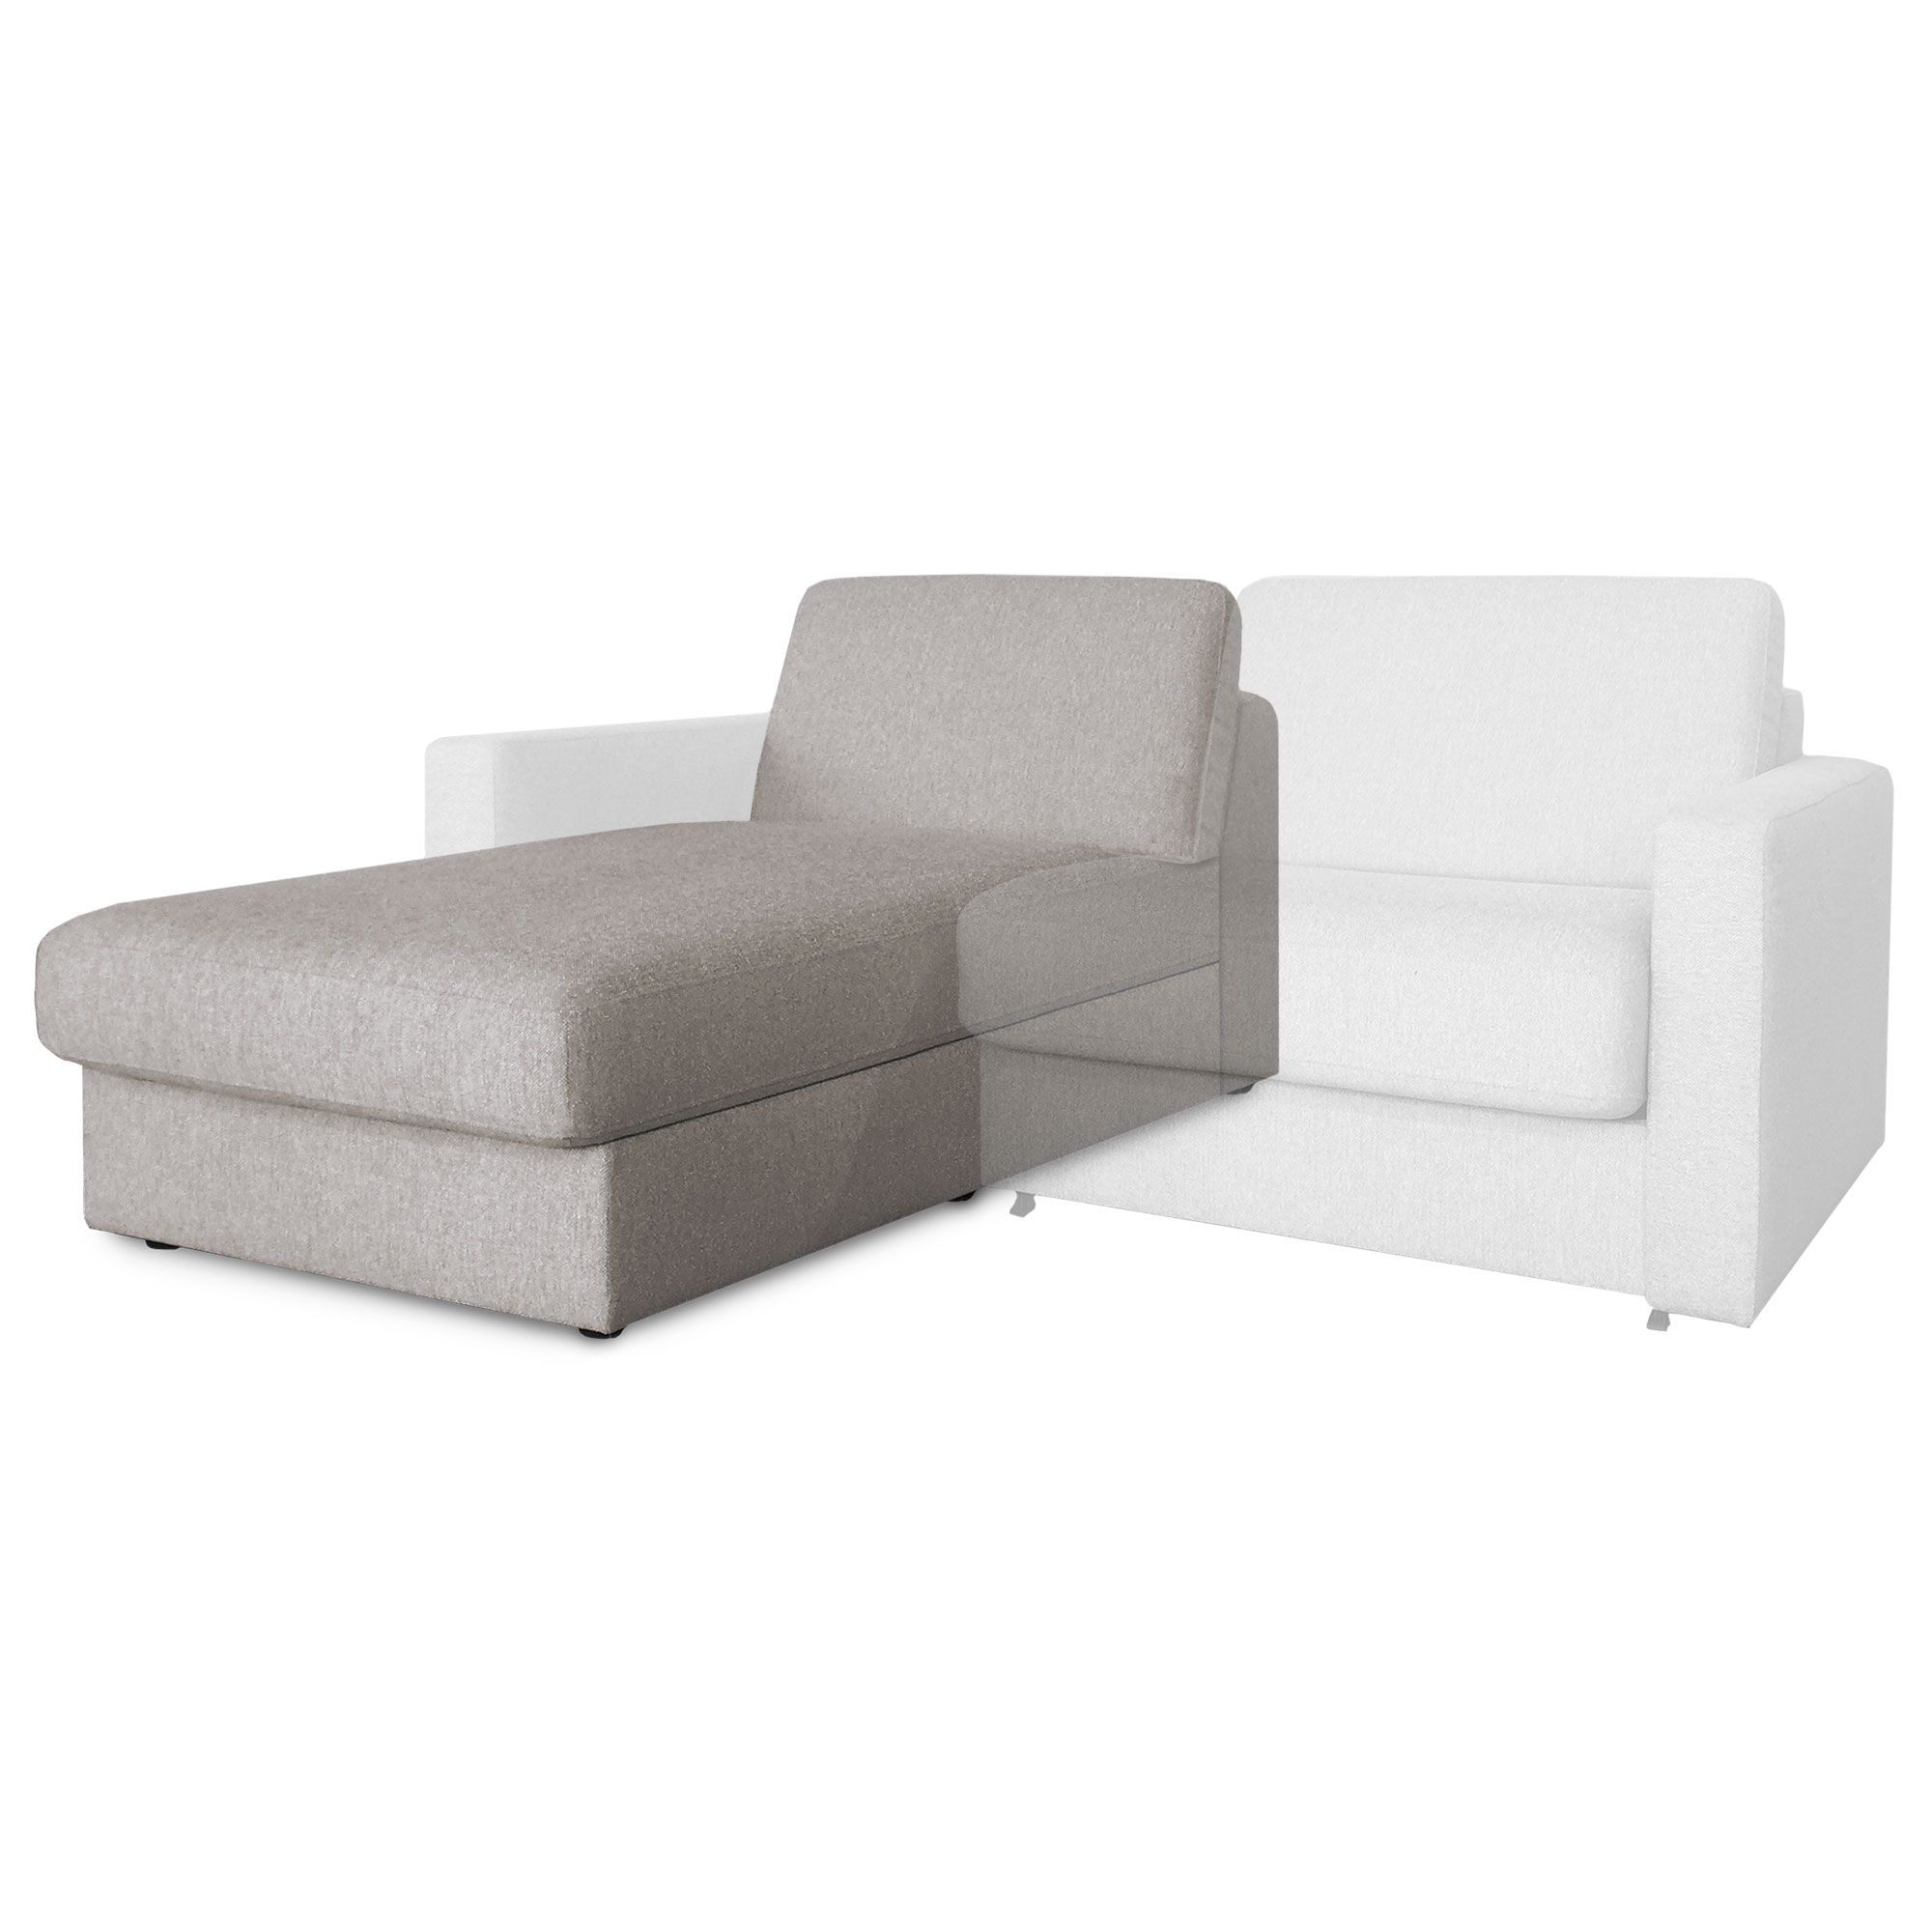 Awesome Sofa Chair Hsn Code